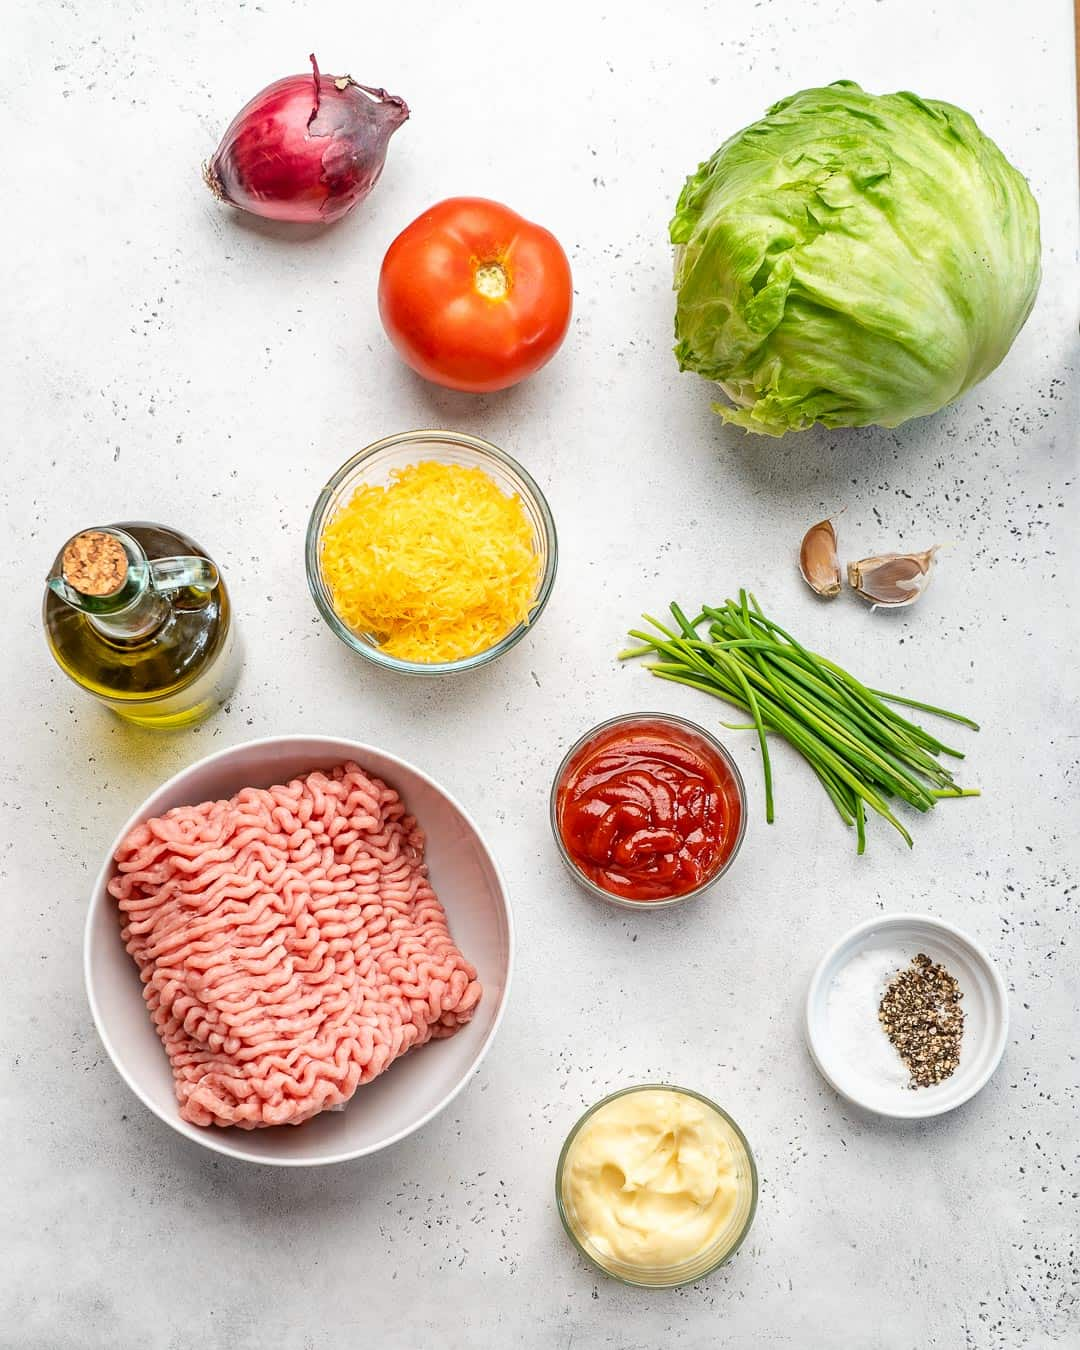 chicken burger ingredients